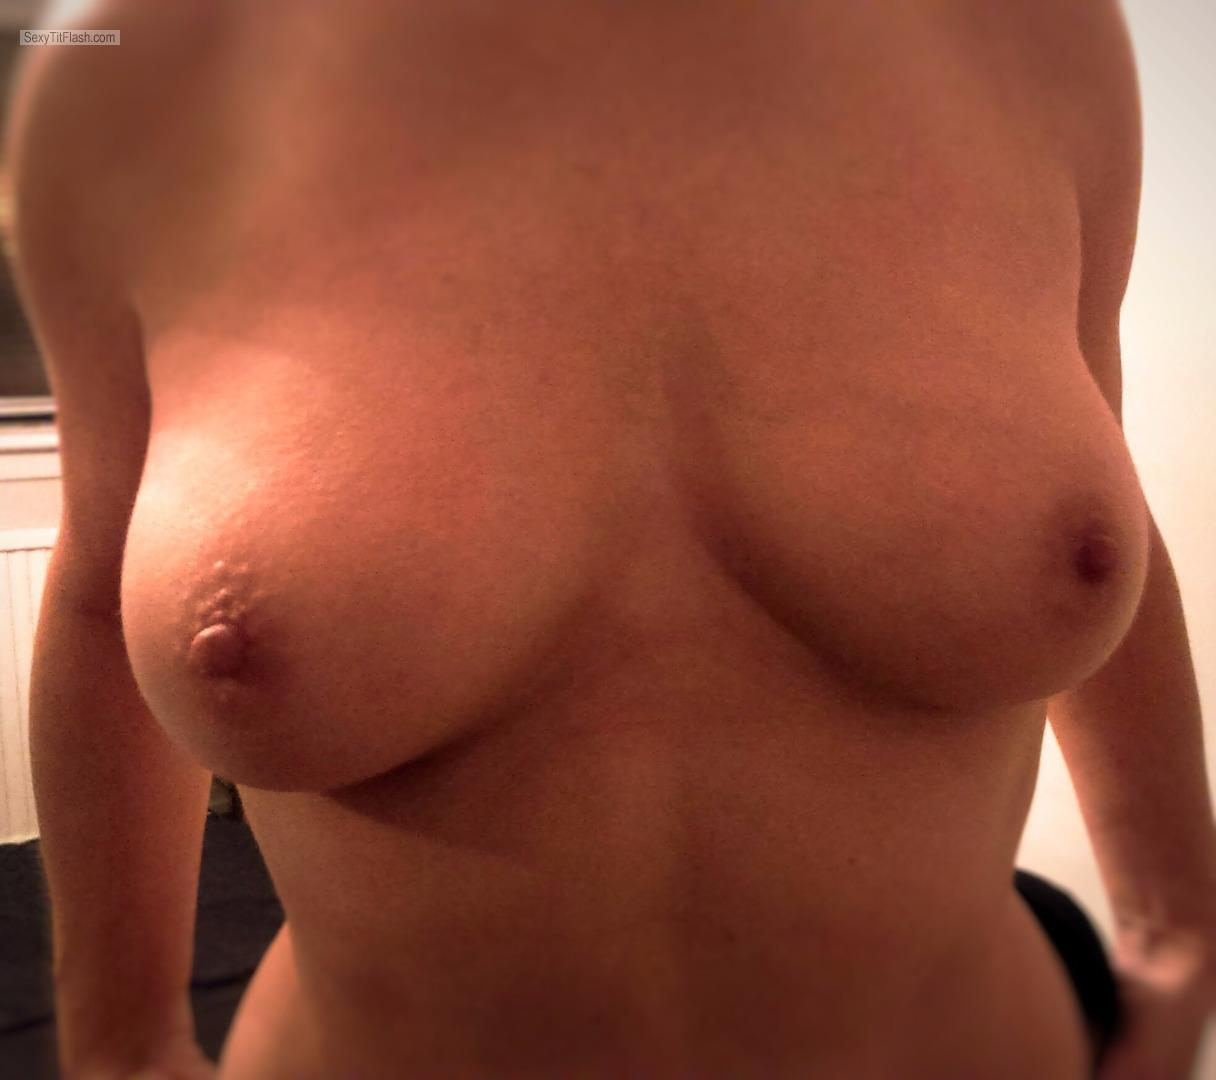 Tit Flash: My Very Small Tits (Selfie) - Blonde48 from United Kingdom